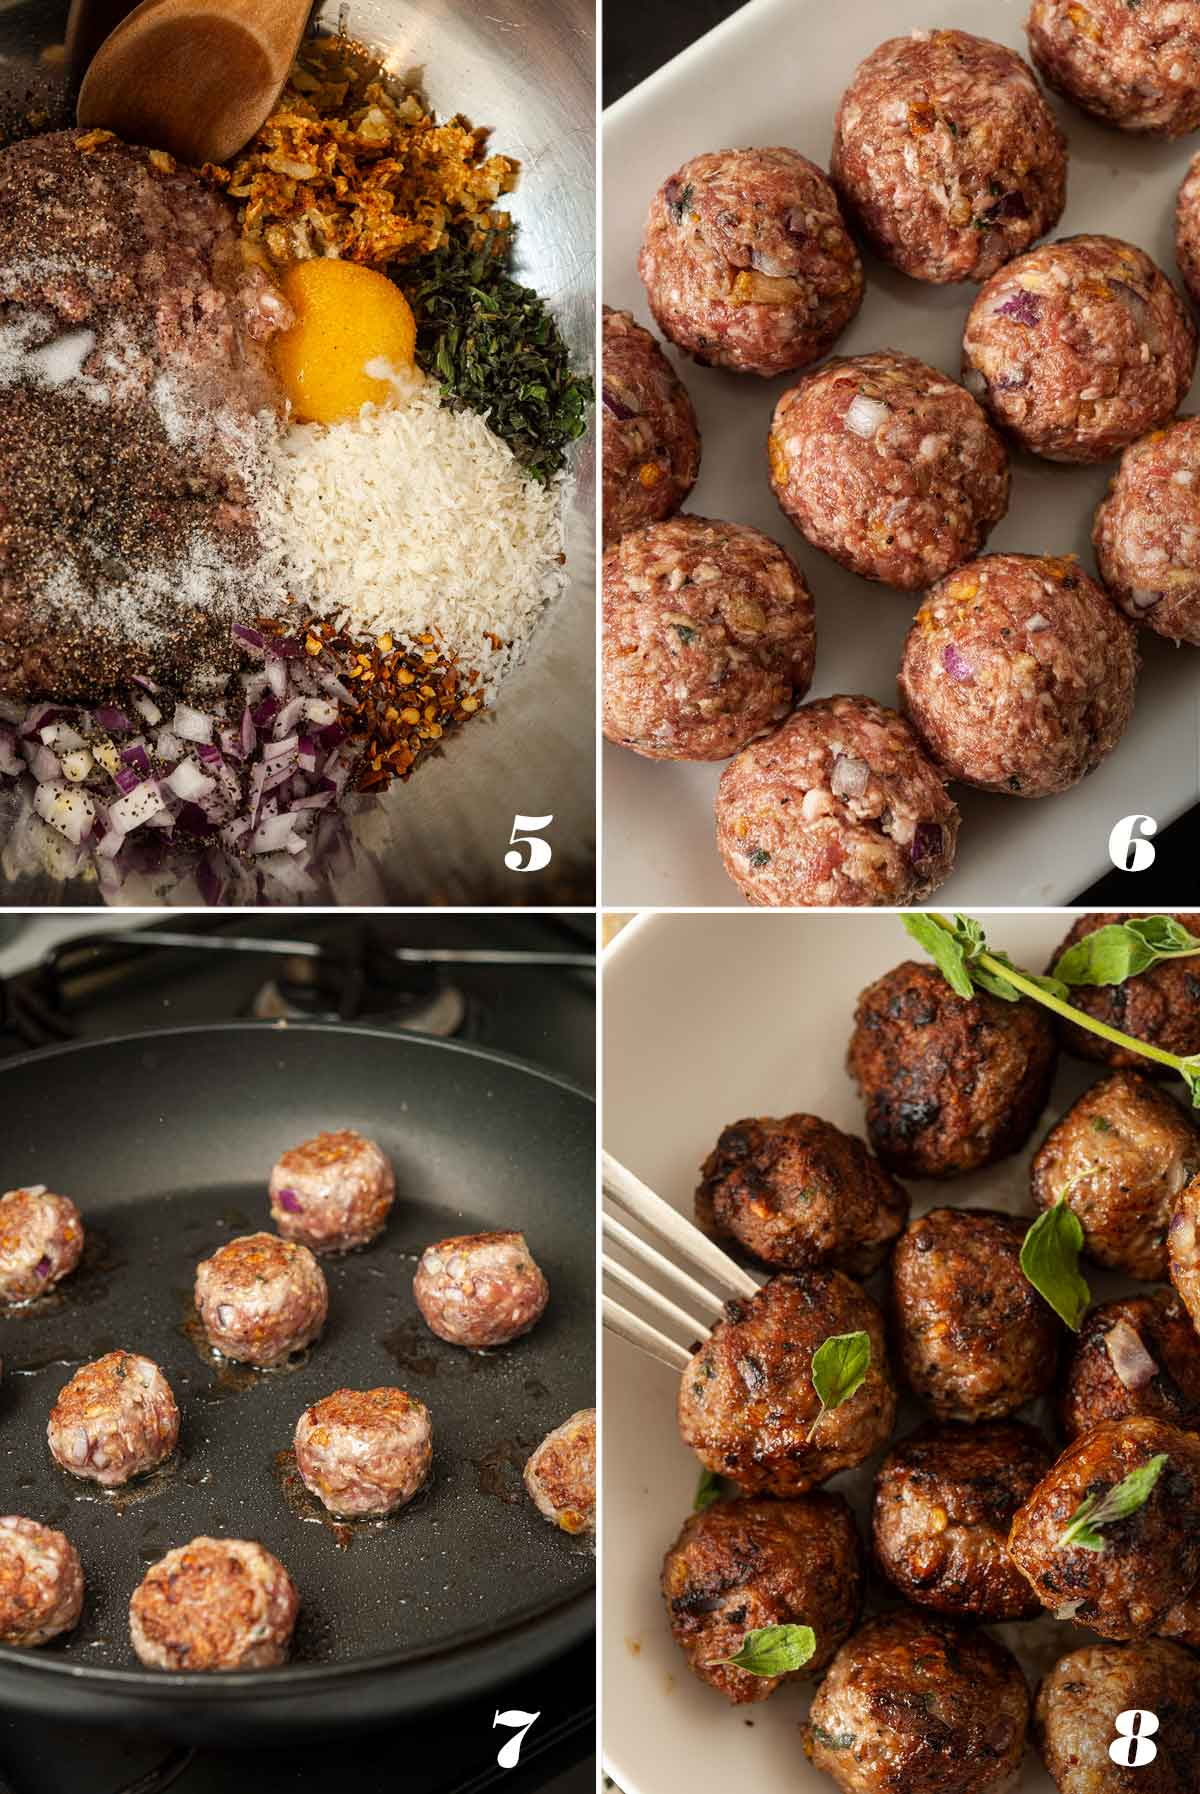 A collage of 4 images showing how to make spicy lamb meatballs.